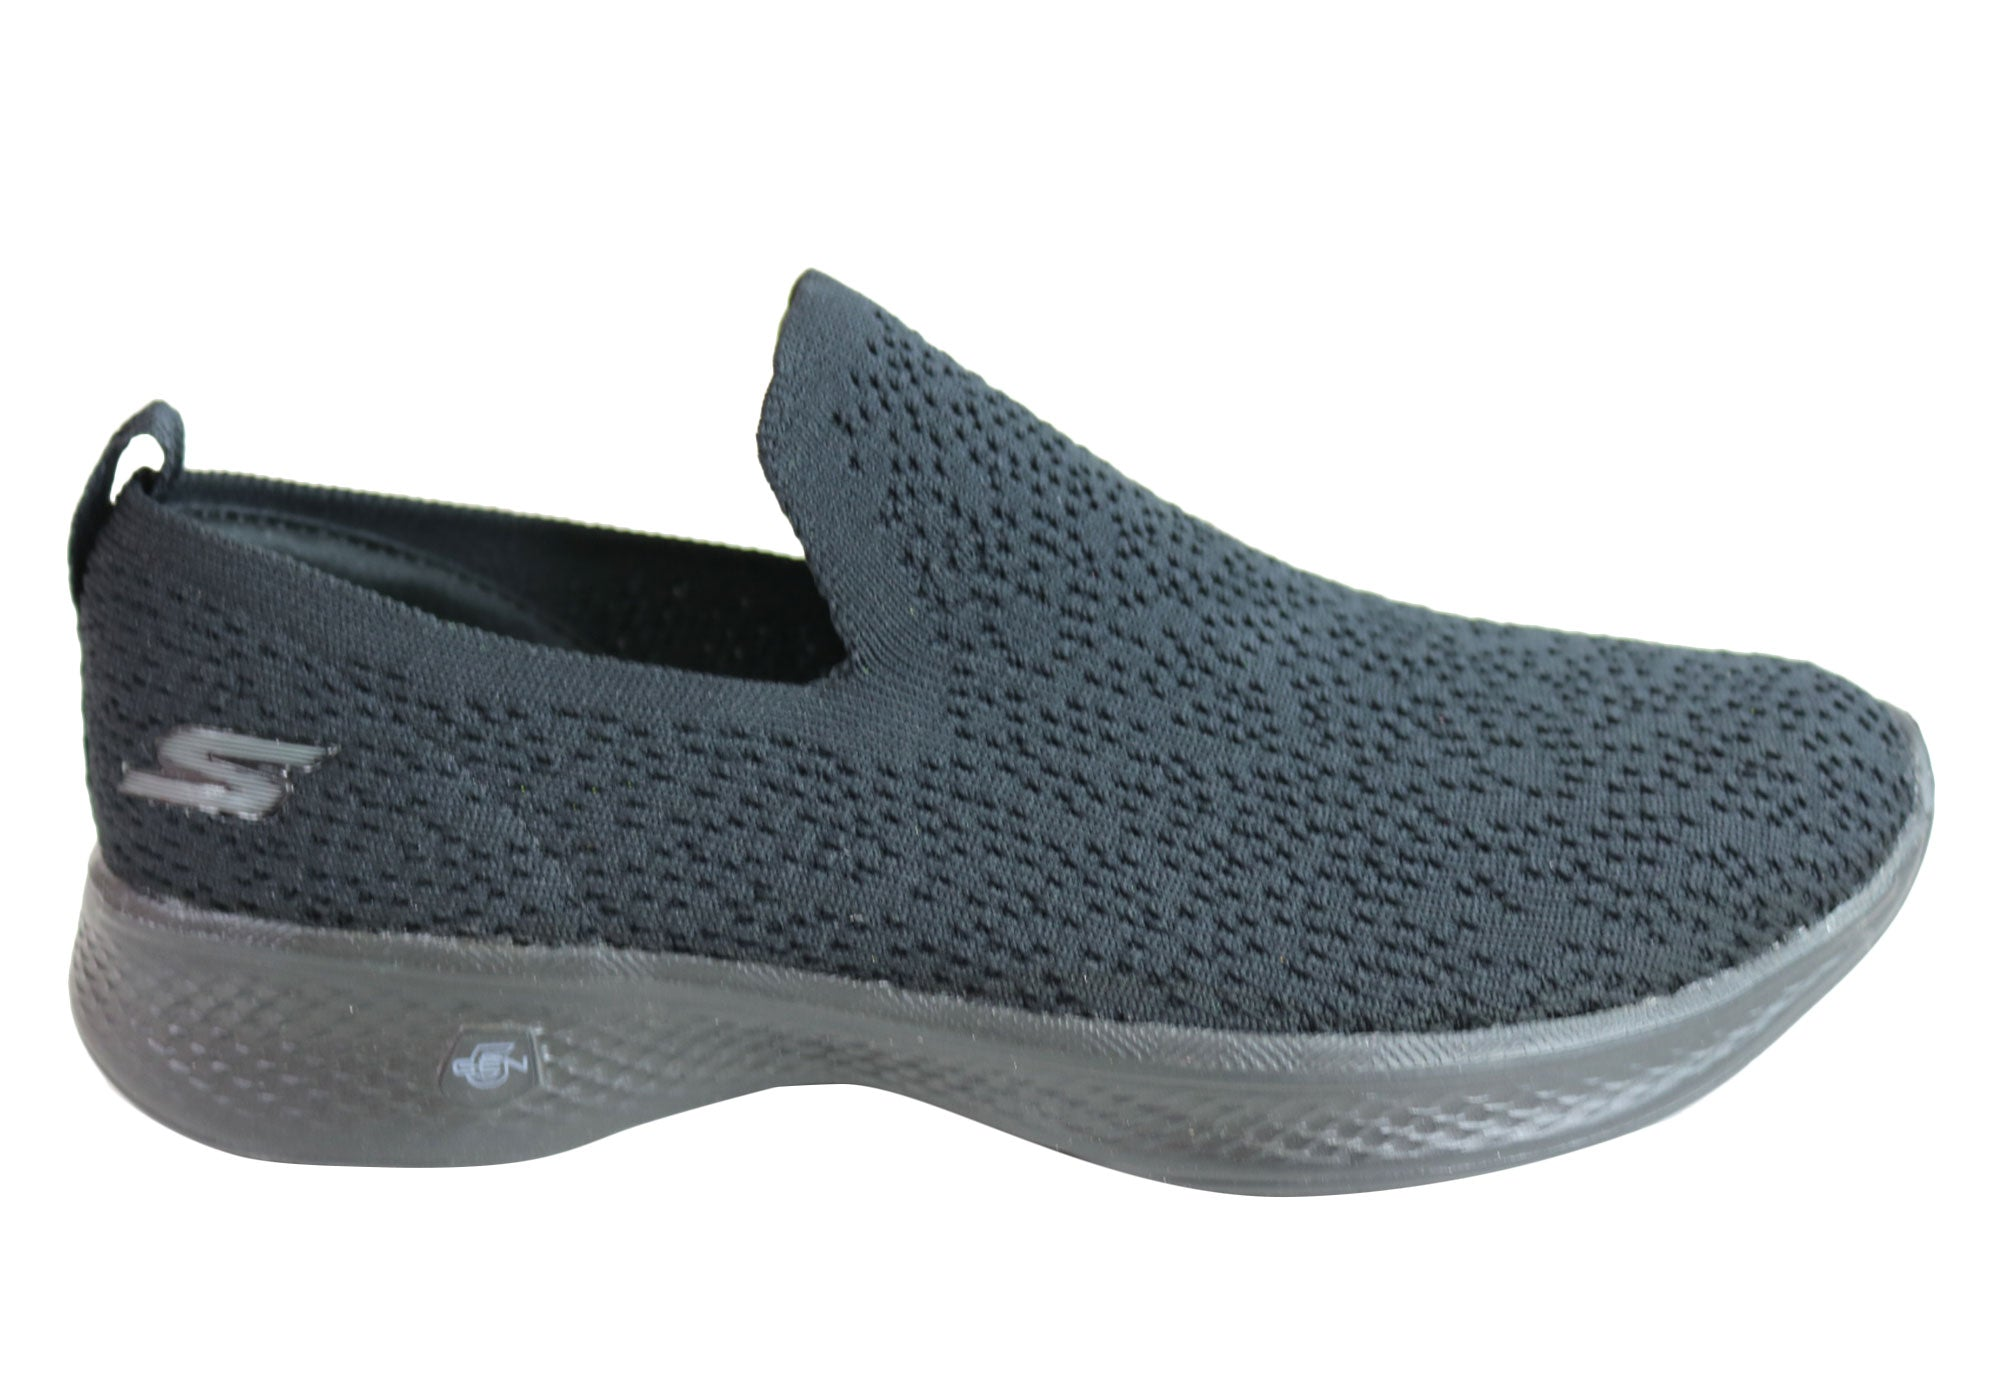 NEW-SKECHERS-WOMENS-GO-WALK-4-GIFTED-COMFORT-SLIP-ON-CASUAL-SHOES